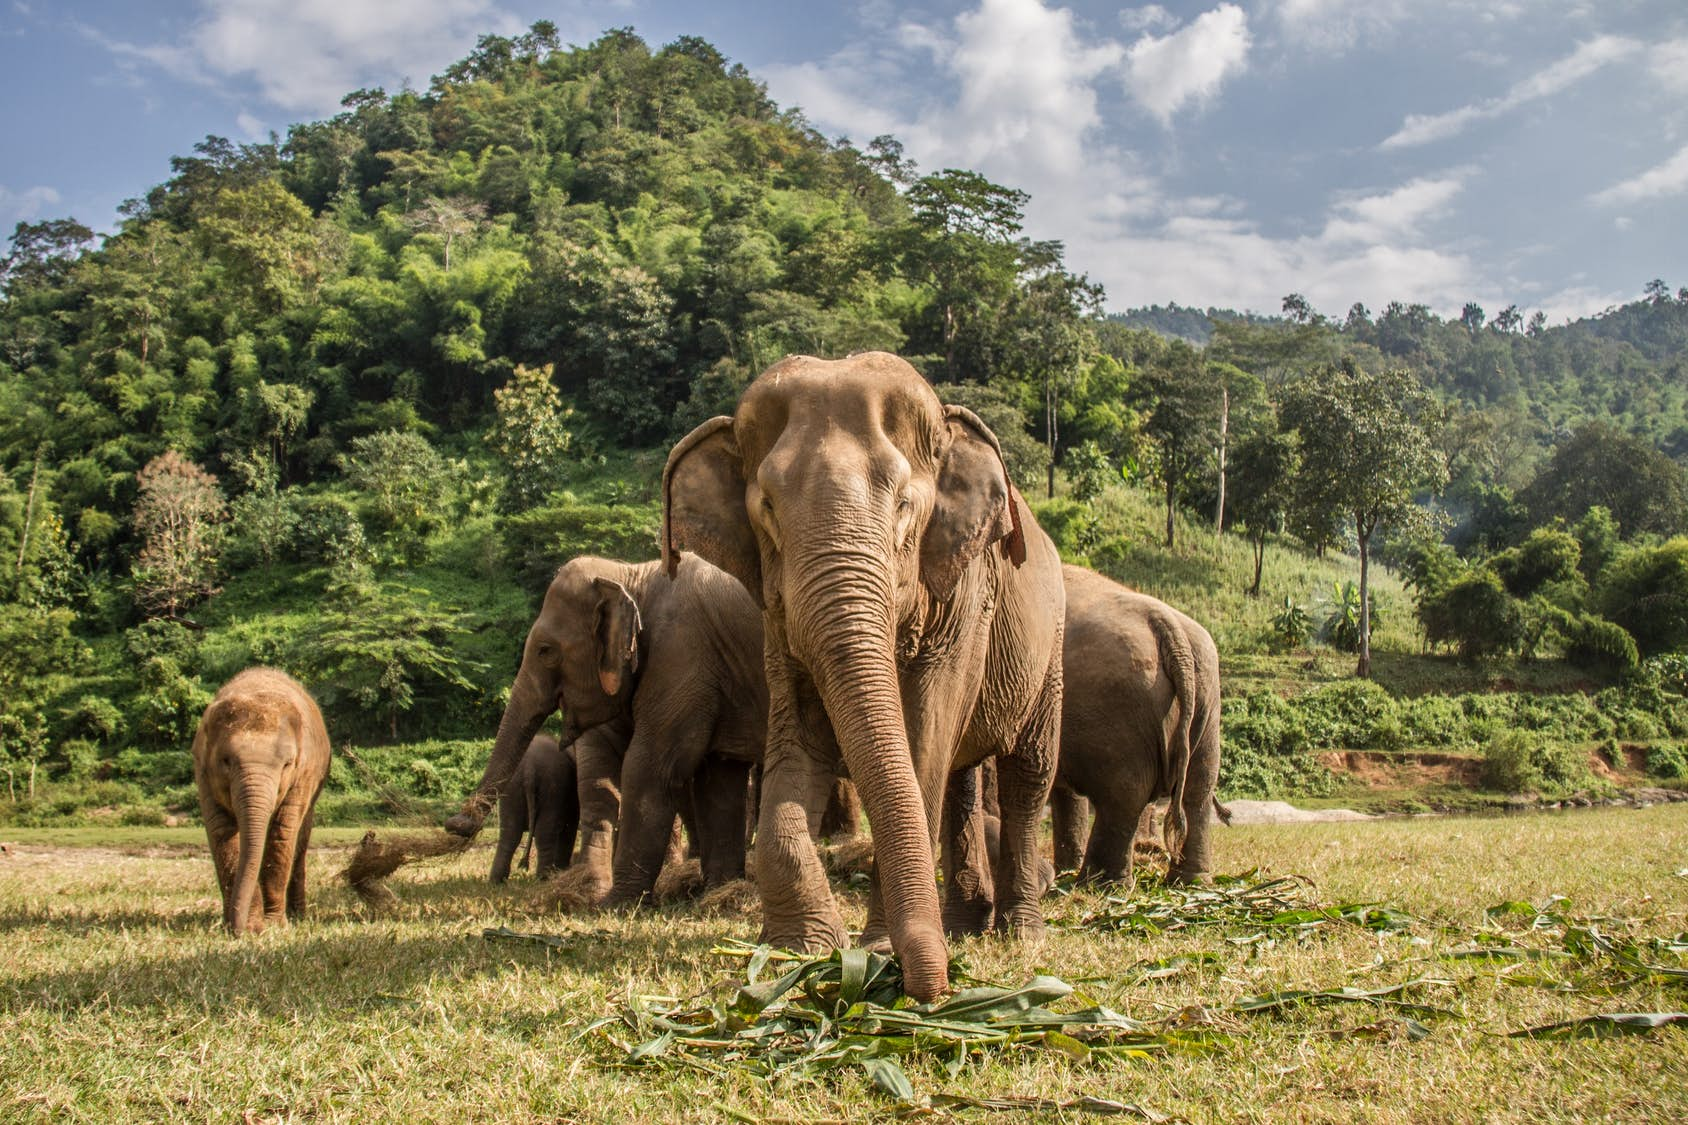 How to interact ethically with elephants in Thailand